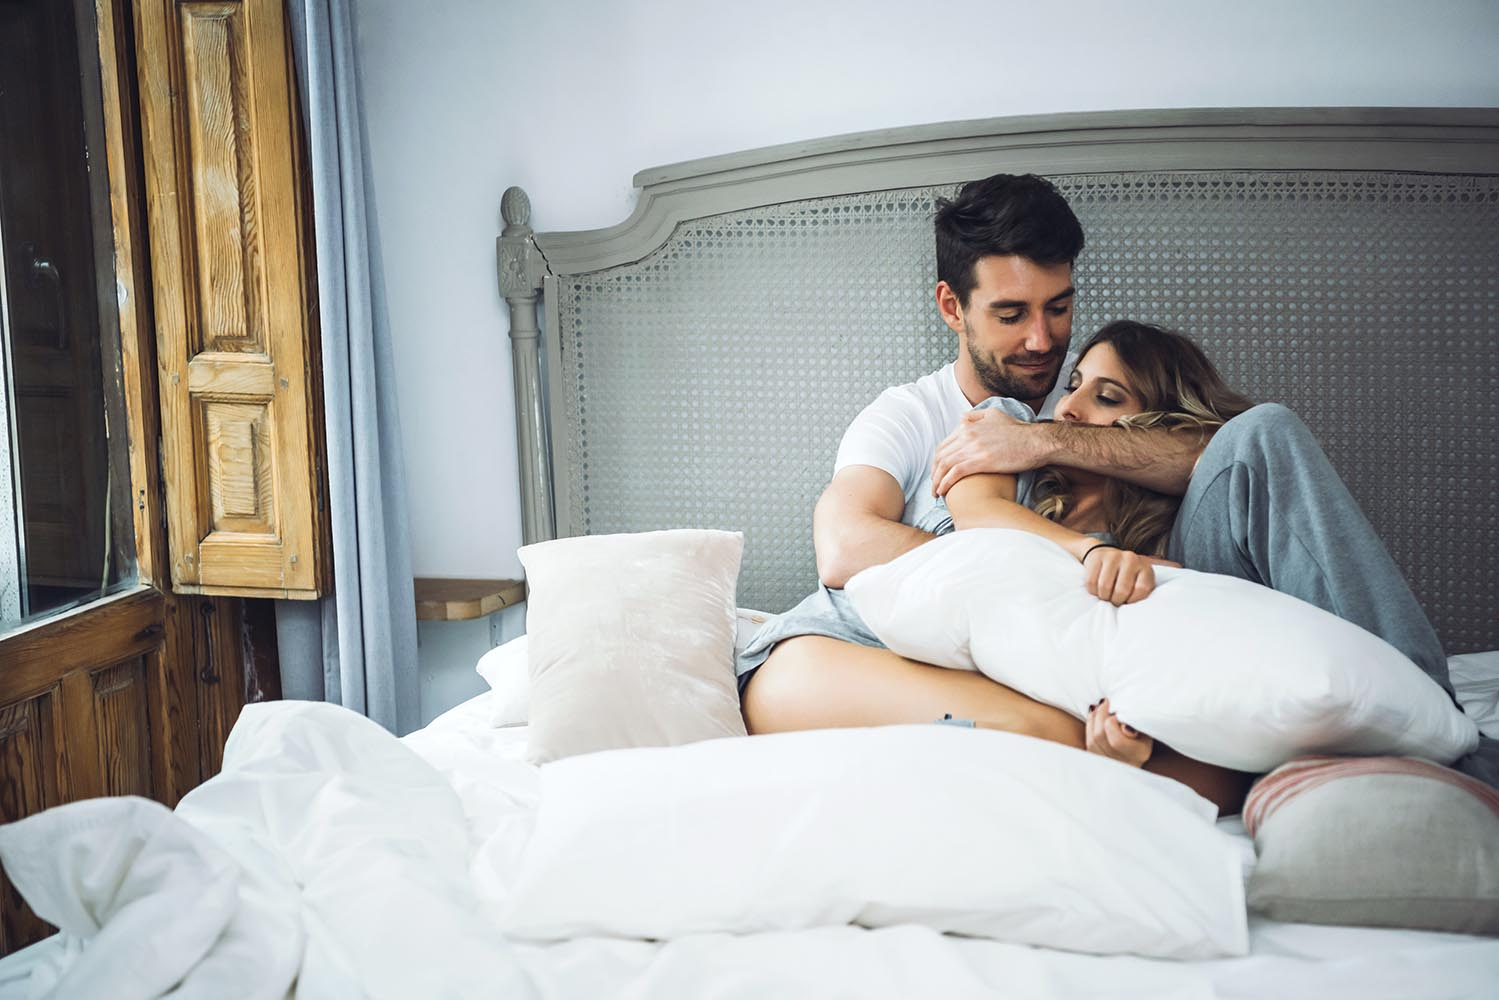 Cheerful couple embracing in bed